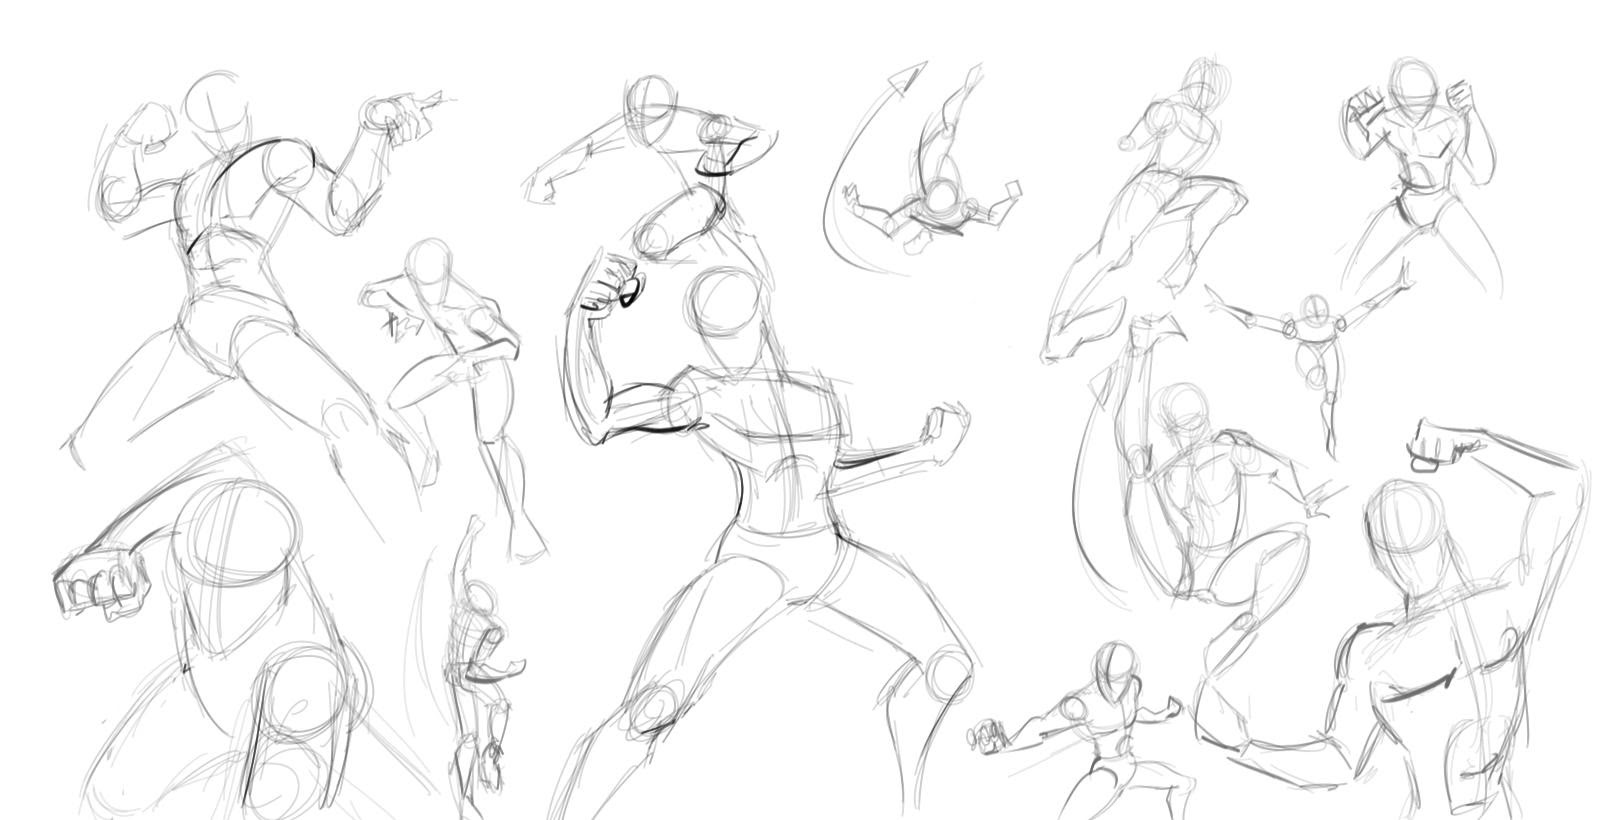 It's just an image of Refreshing Figure Drawing Male